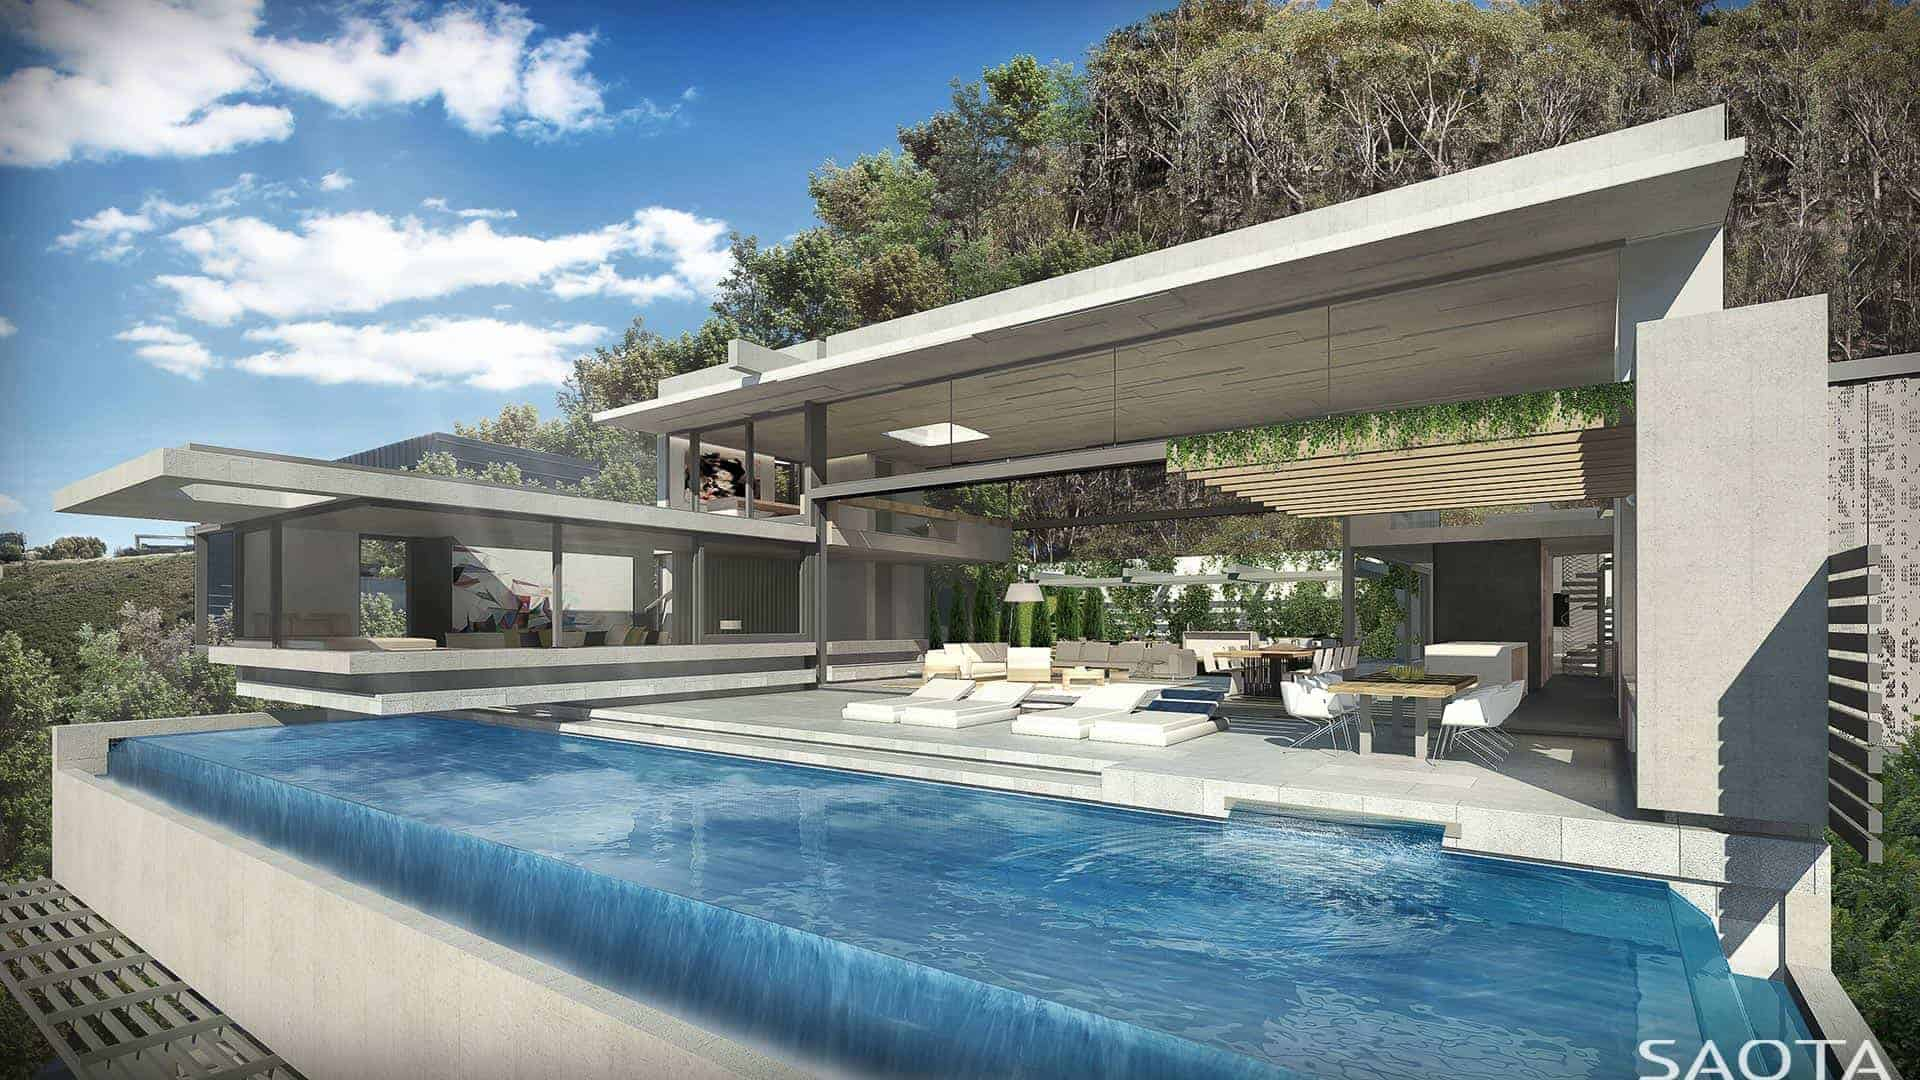 A gorgeous contemporary home designed by SAOTA. It offers a breathtaking swimming pool and other outdoor amenities.